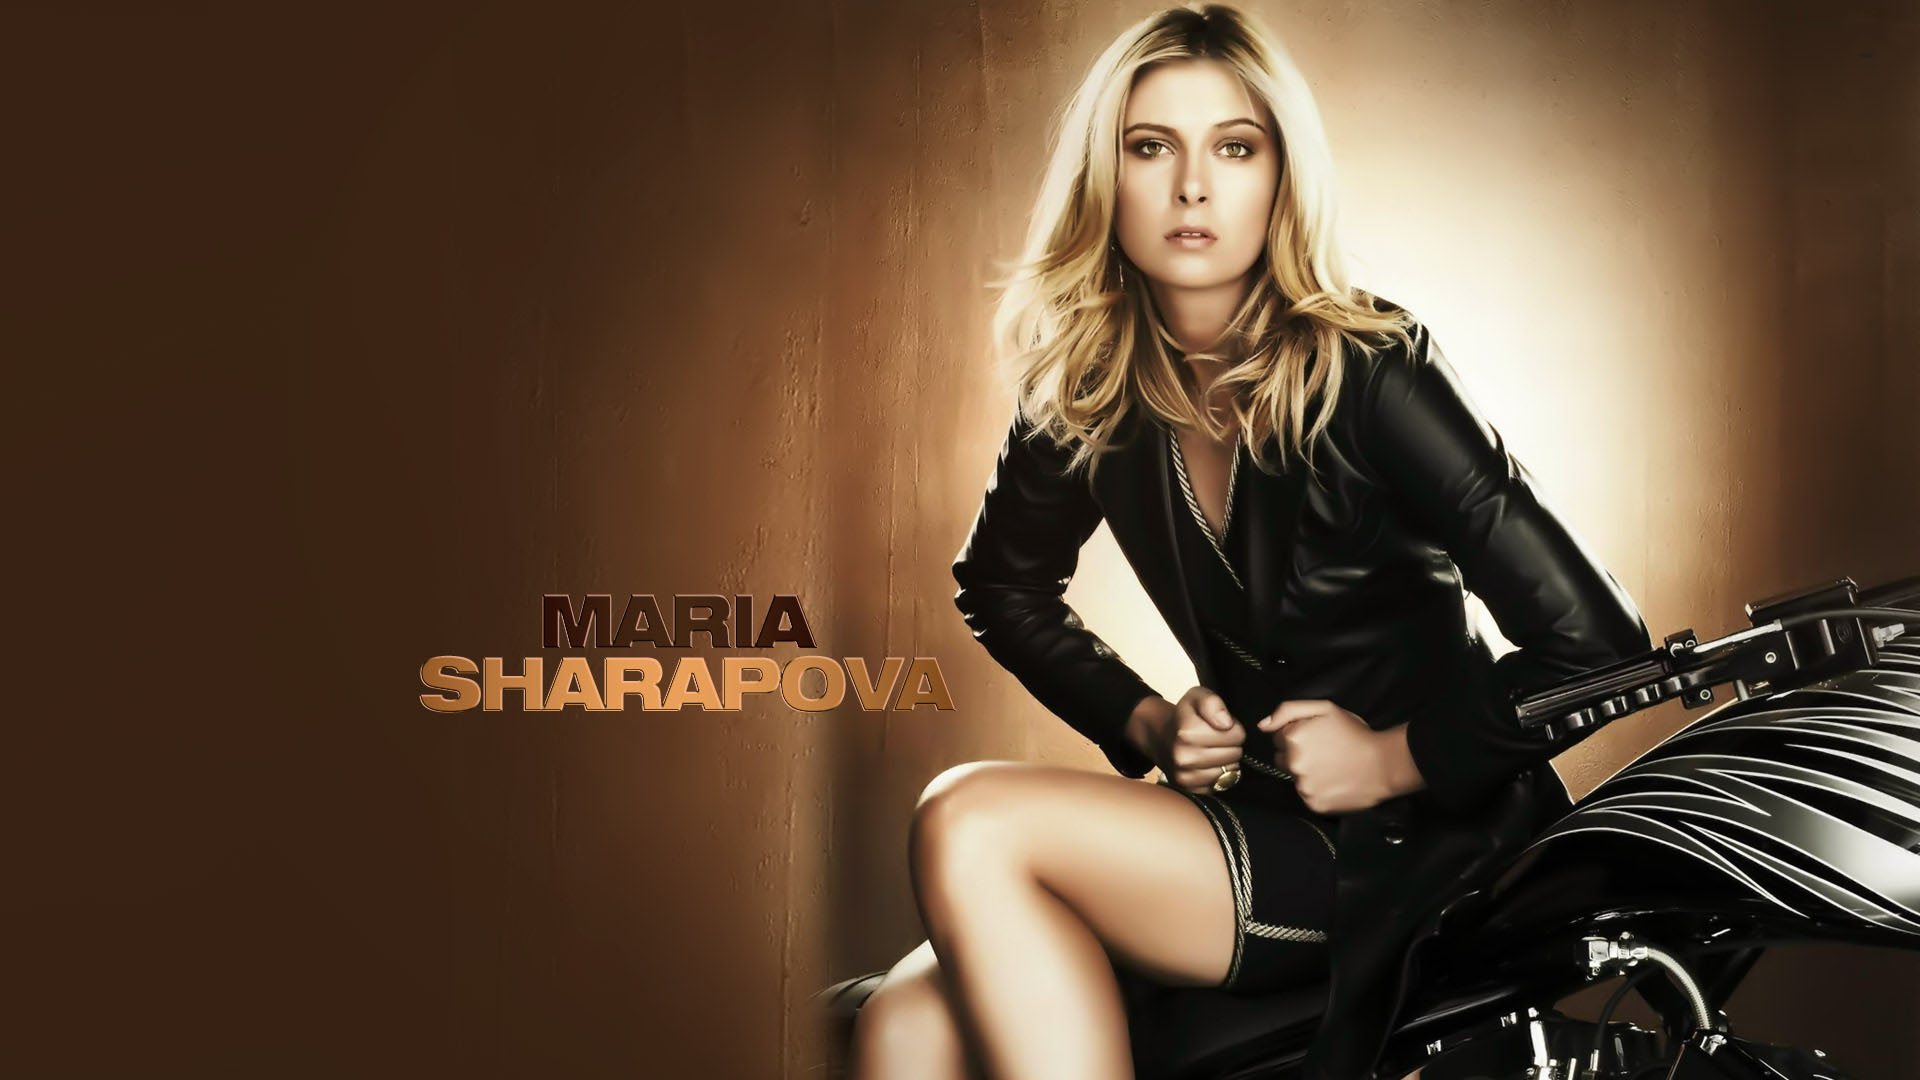 Maria Sharapova Wallpapers Desktop 1920x1080   4USkY 1920x1080